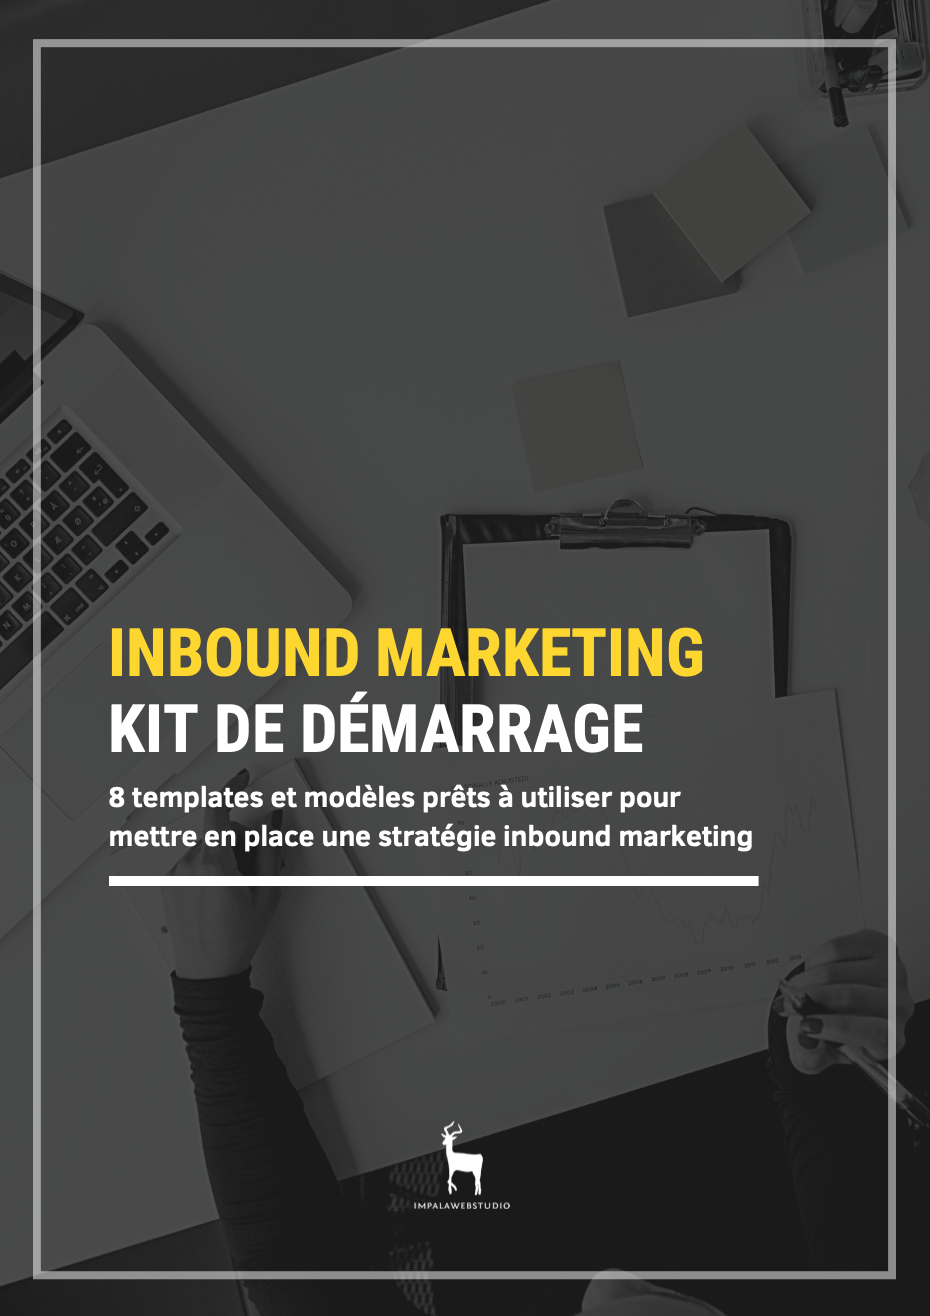 Kit de démarrage de l'Inbound Marketing (+ 8 templates prêts à l'emploi) - {id=5, name='template', order=4}